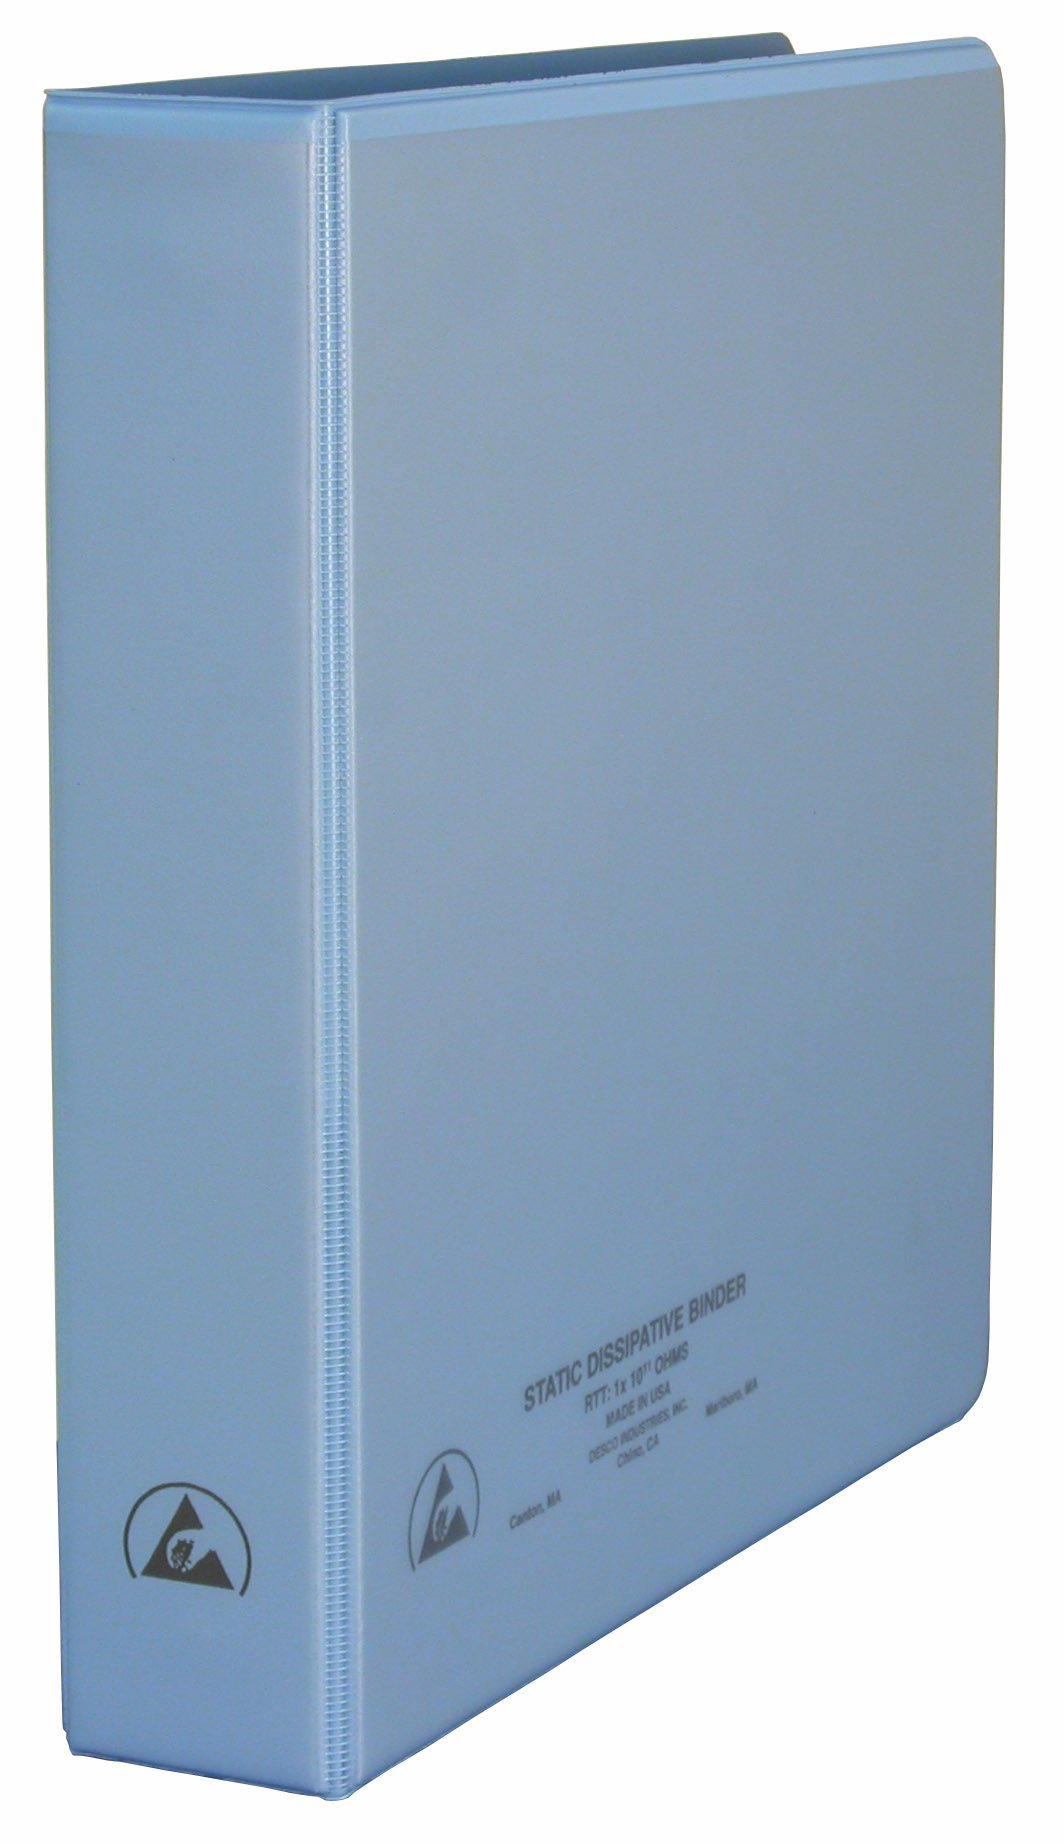 DESCO 7432 Vinyl 3-Ring Static Dissipative Binder with Clear Pocket, 1.5'' Ring, 2.3'' Spine